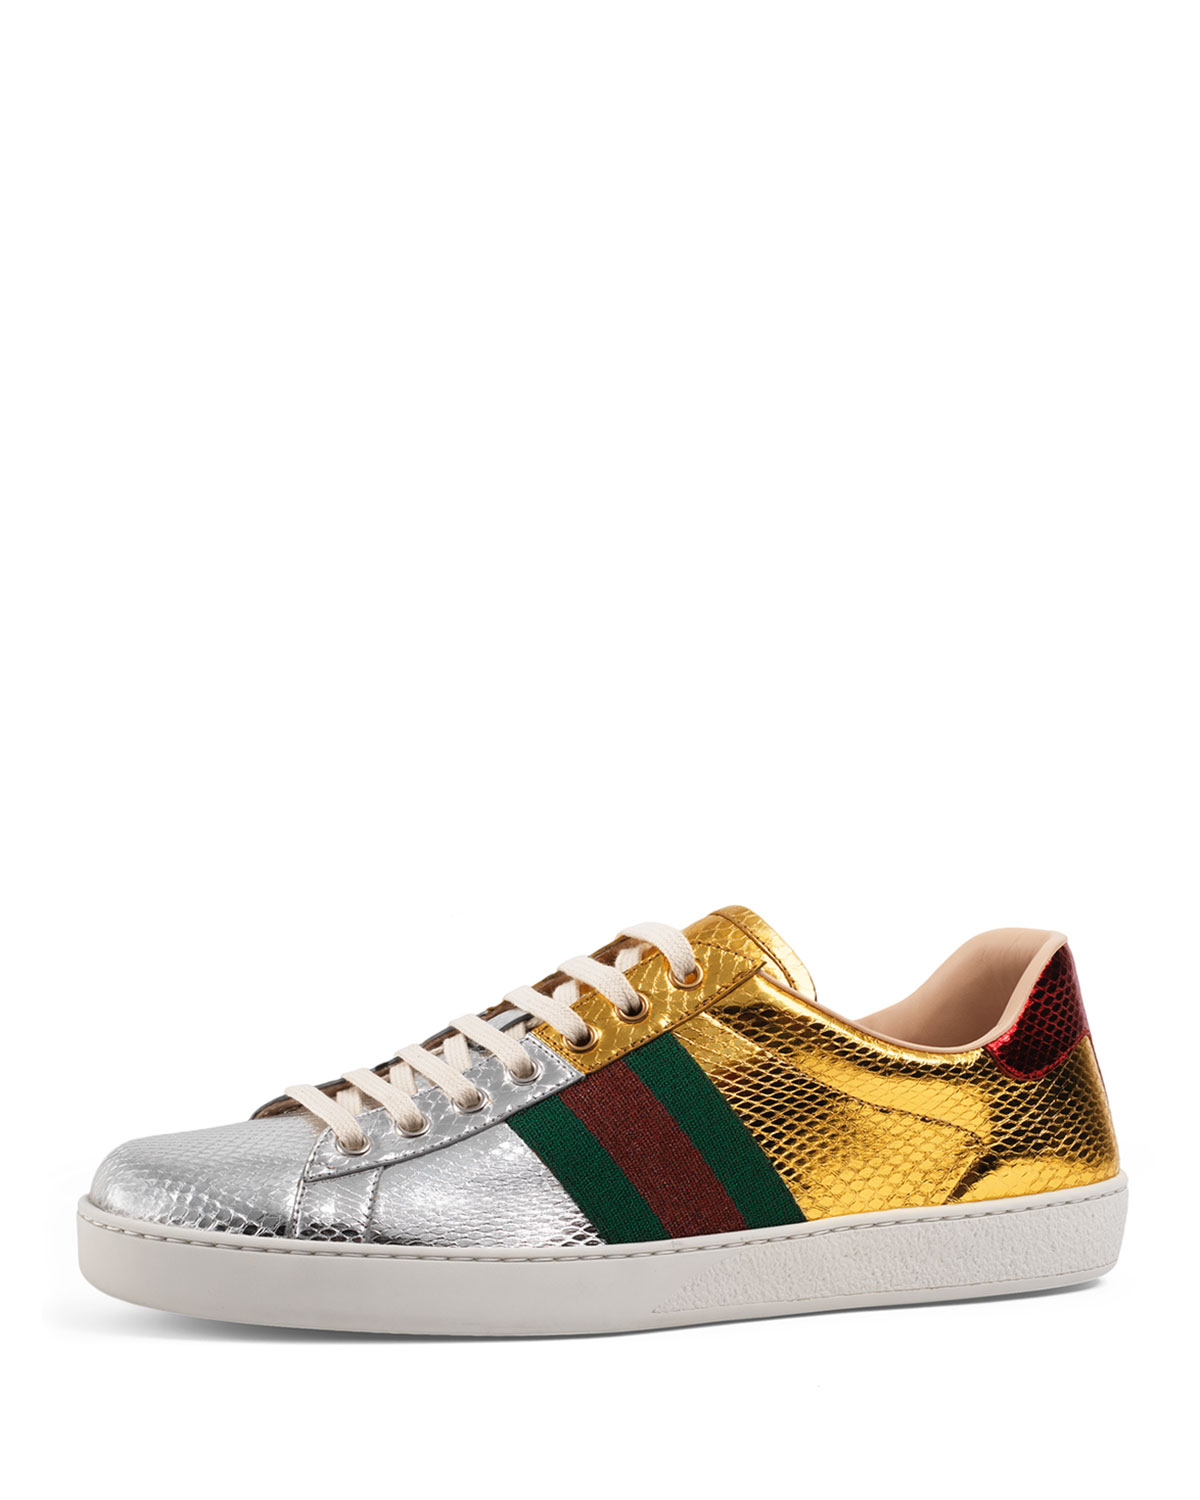 Gucci New Ace Snakeskin Low-Top Sneaker